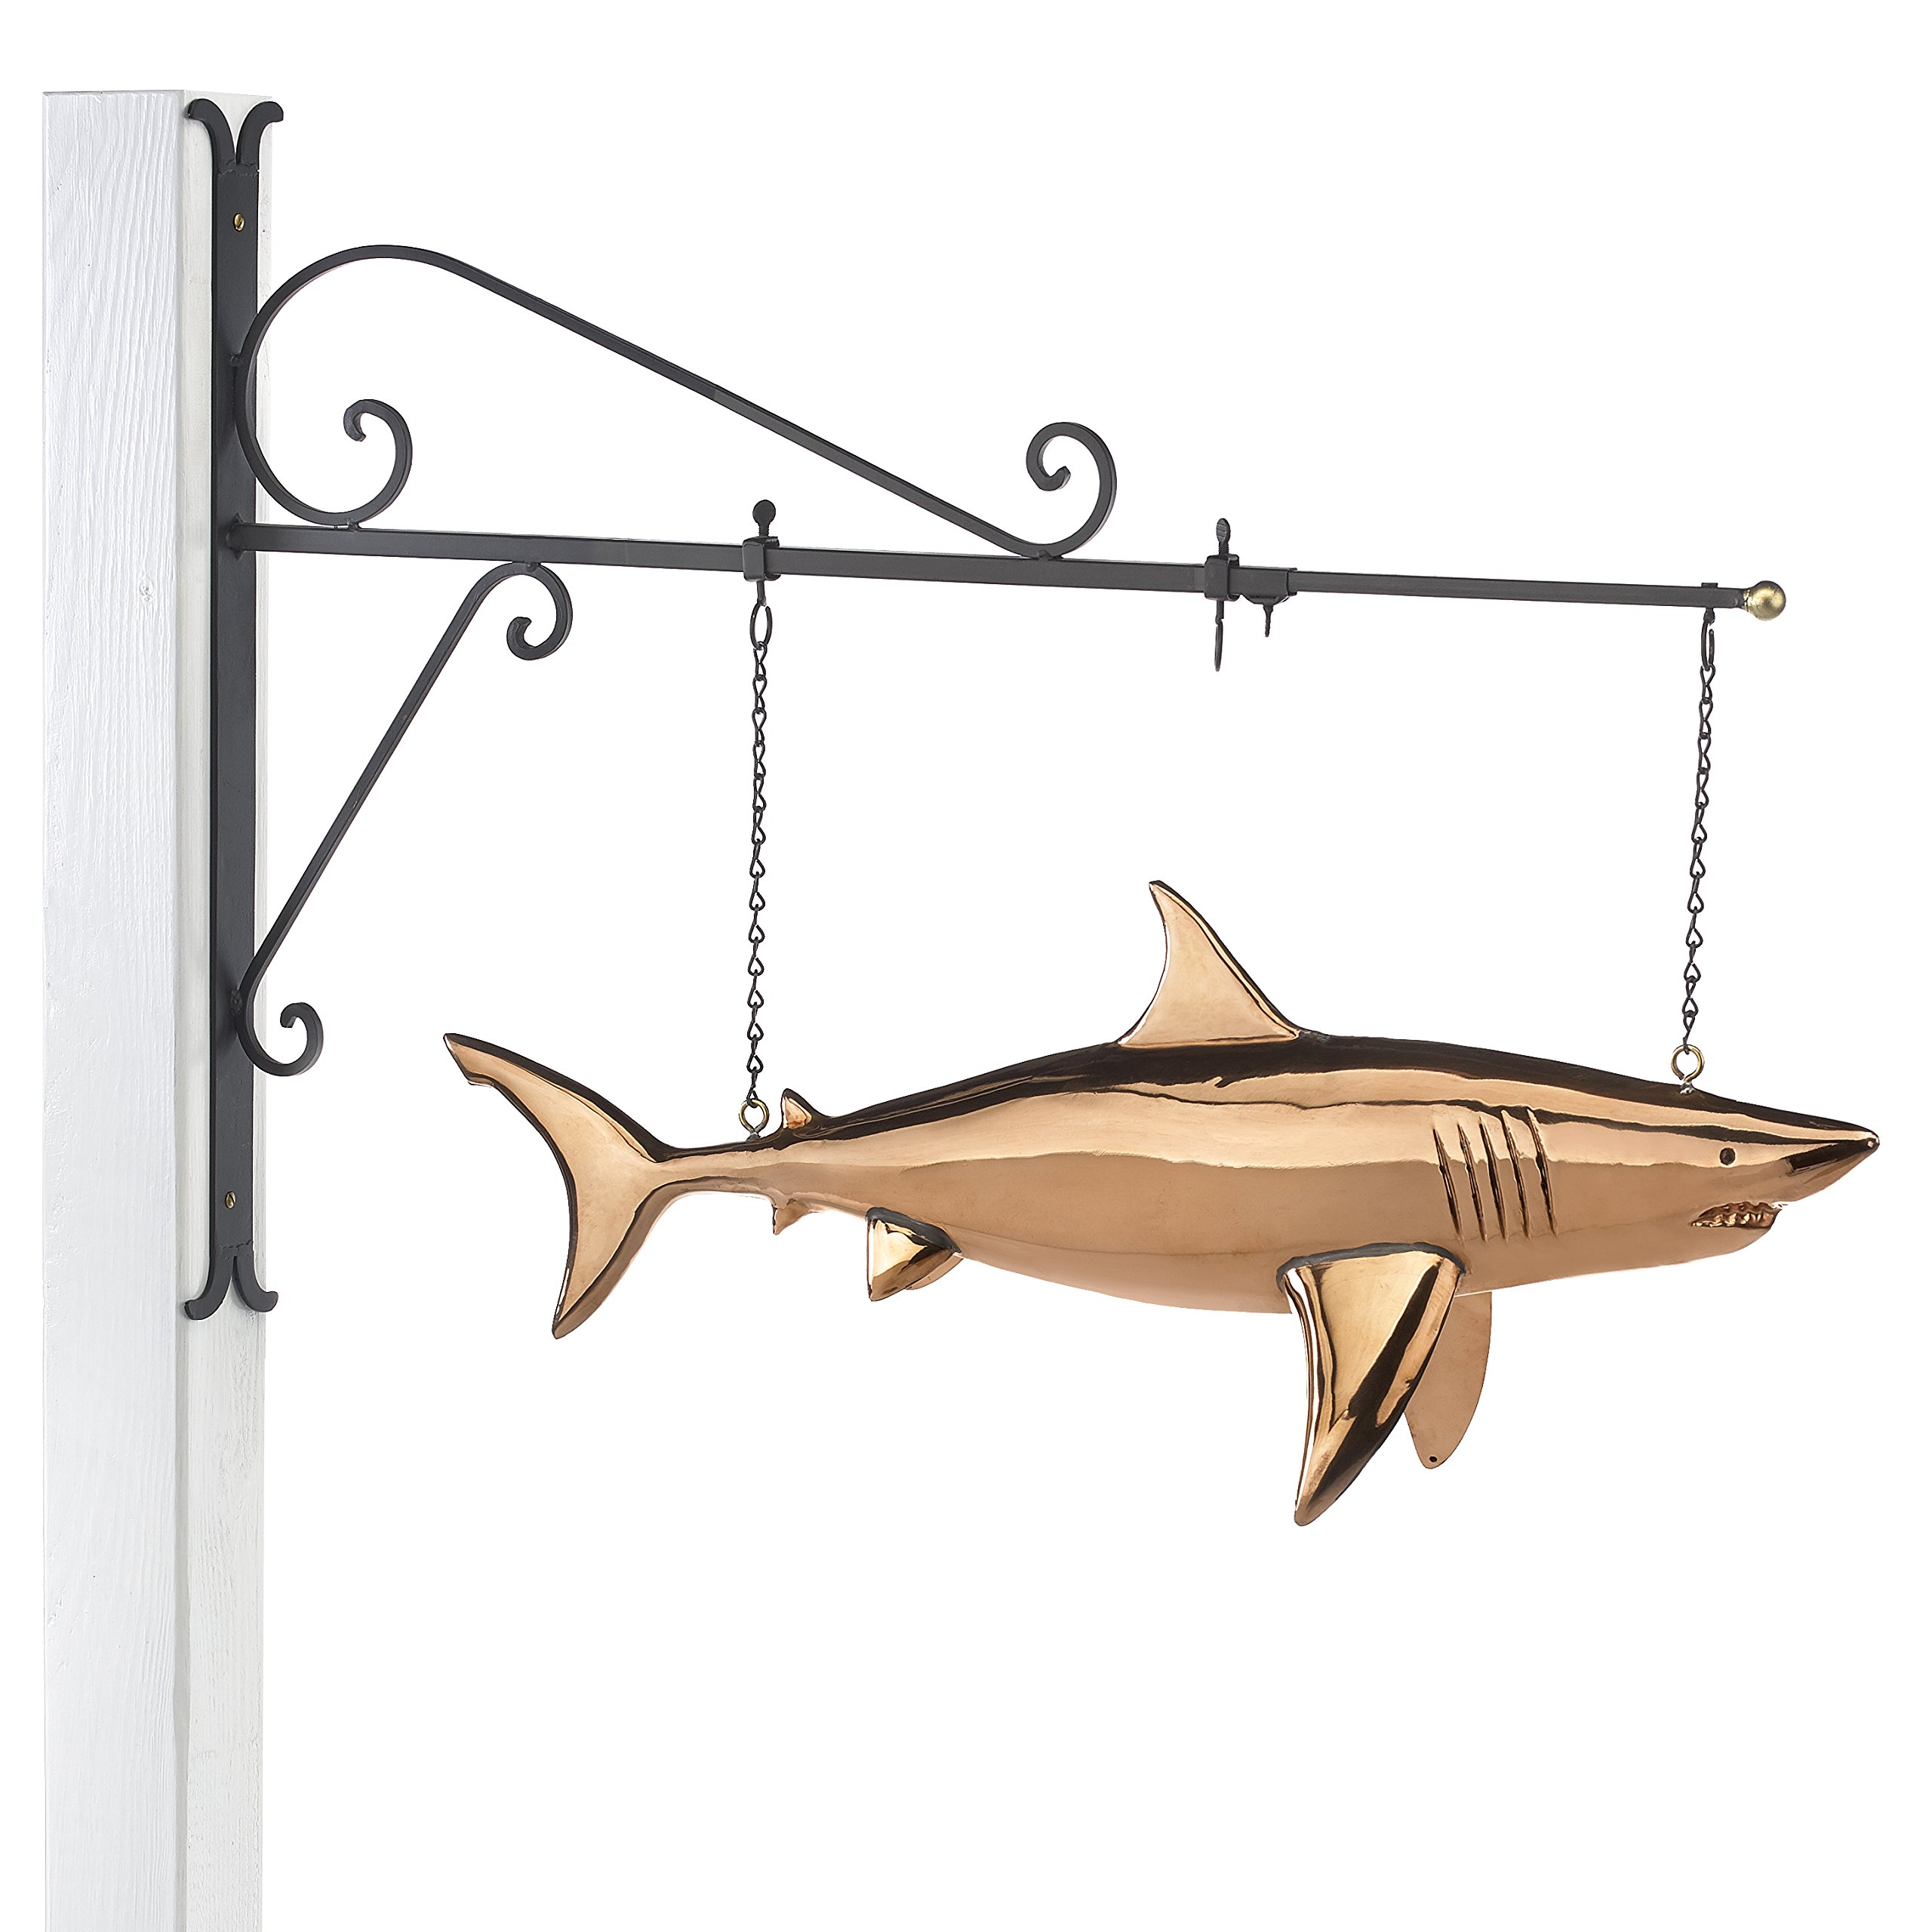 Good Directions Hanging Shark Pure Copper Weathervane Sign with Decorative Scroll Wall Bracket - Welcome Sign, Home / Entrance / Entryway Décor by Good Directions